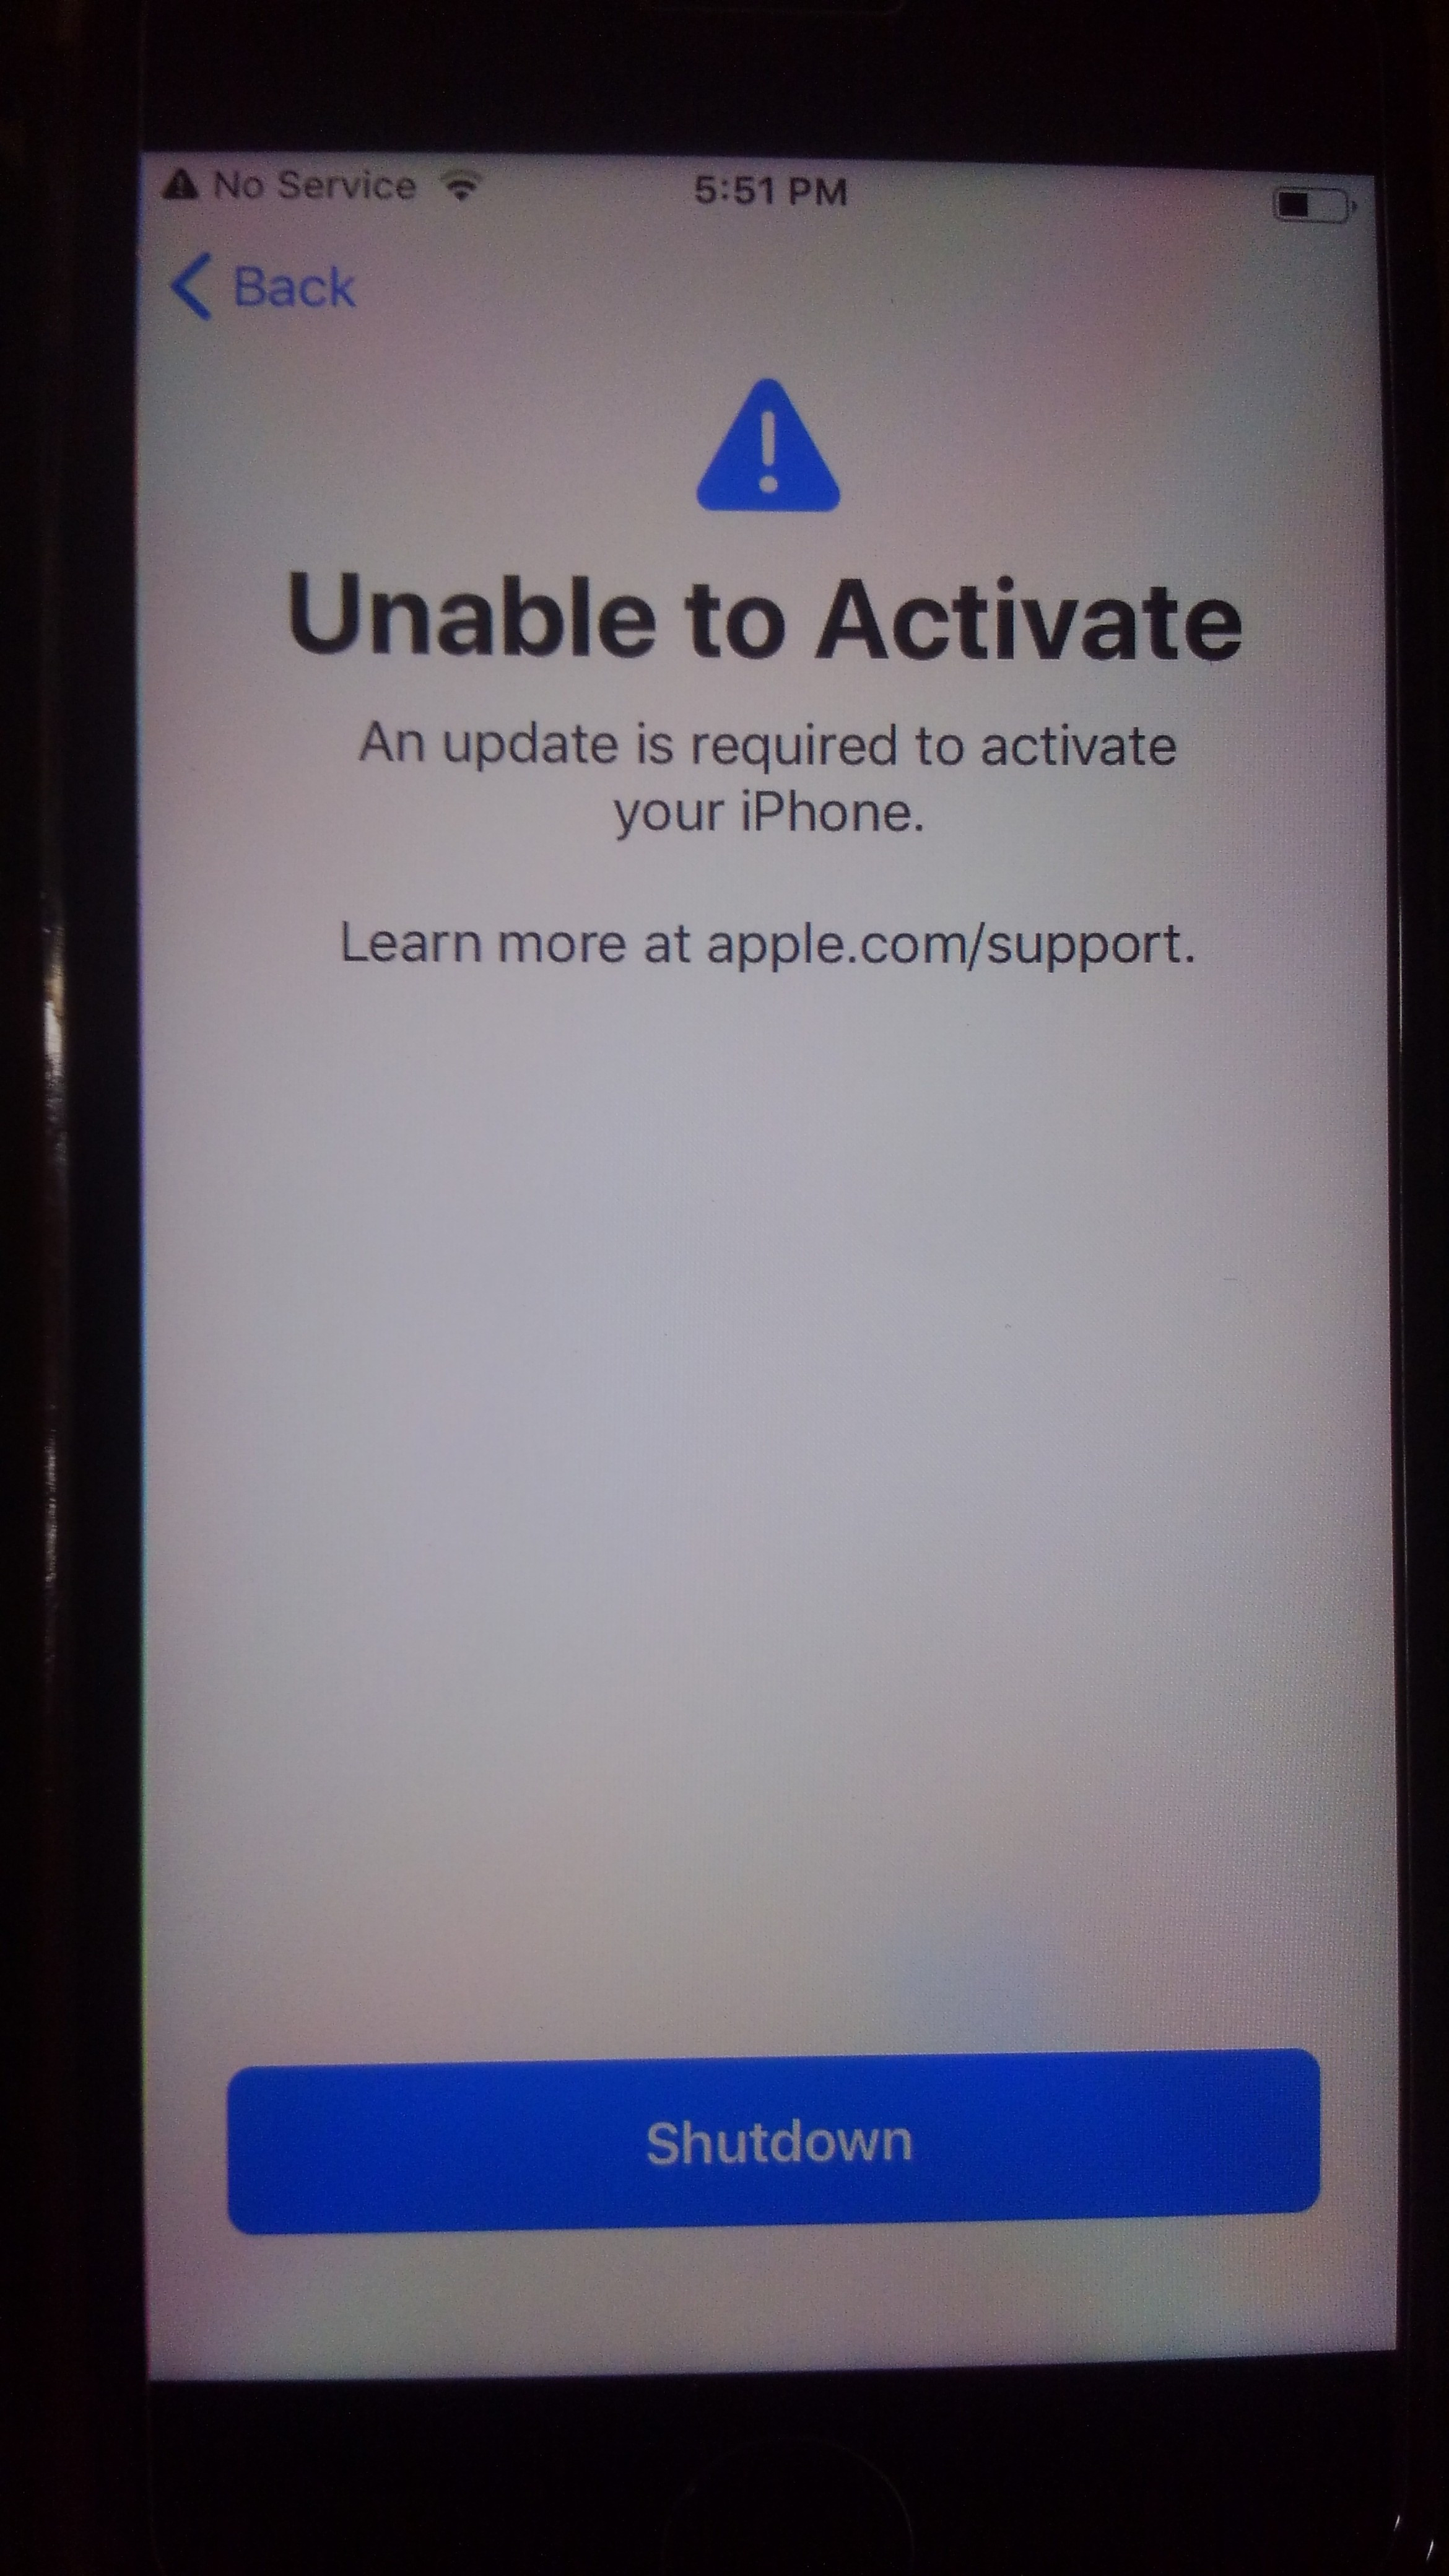 iPhone 7 update required to activate phone - Apple Community